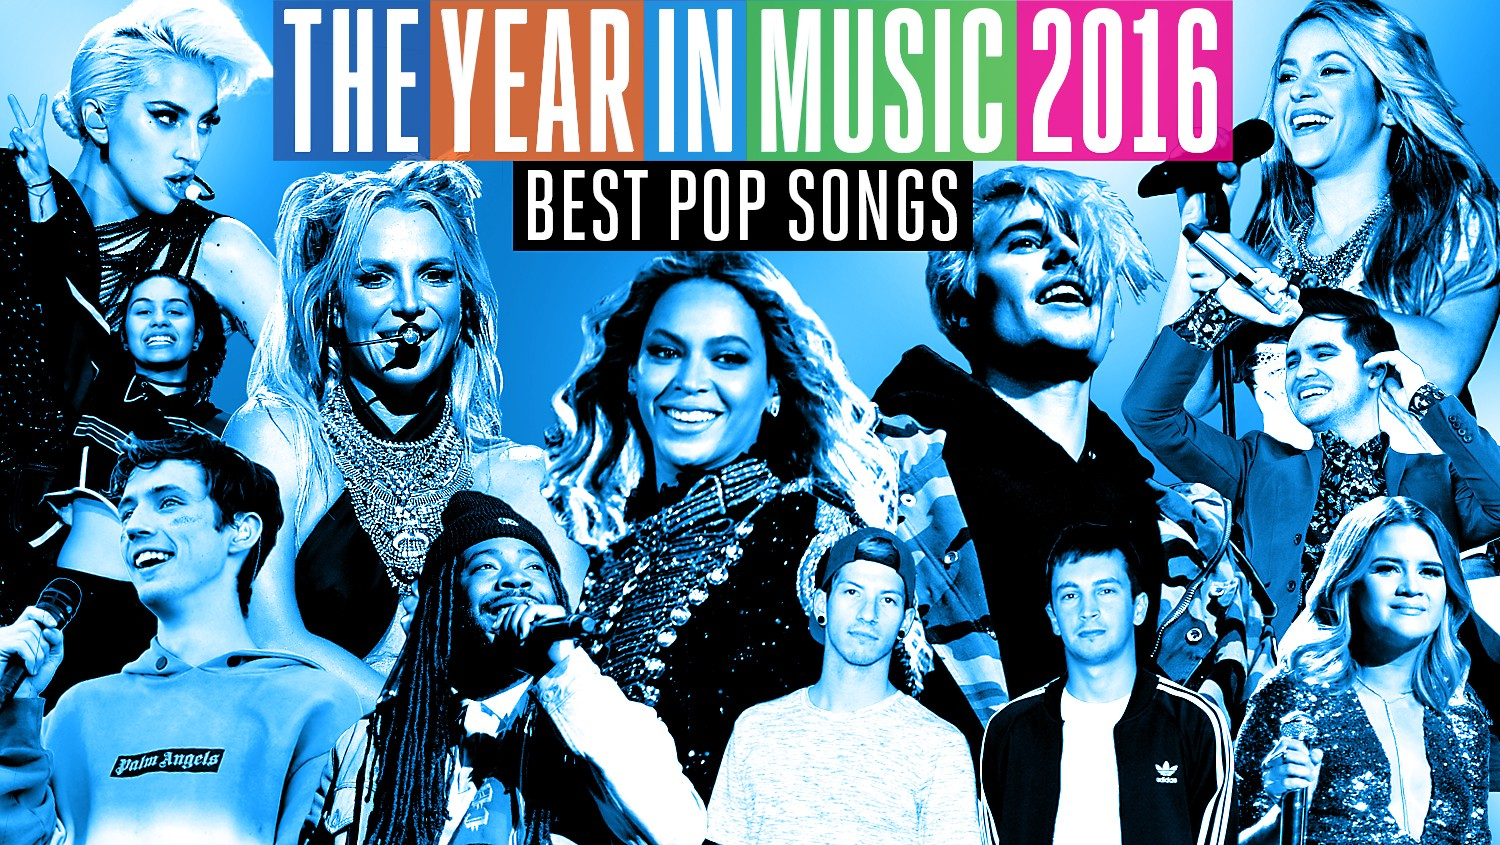 Best Pop Songs of 2016